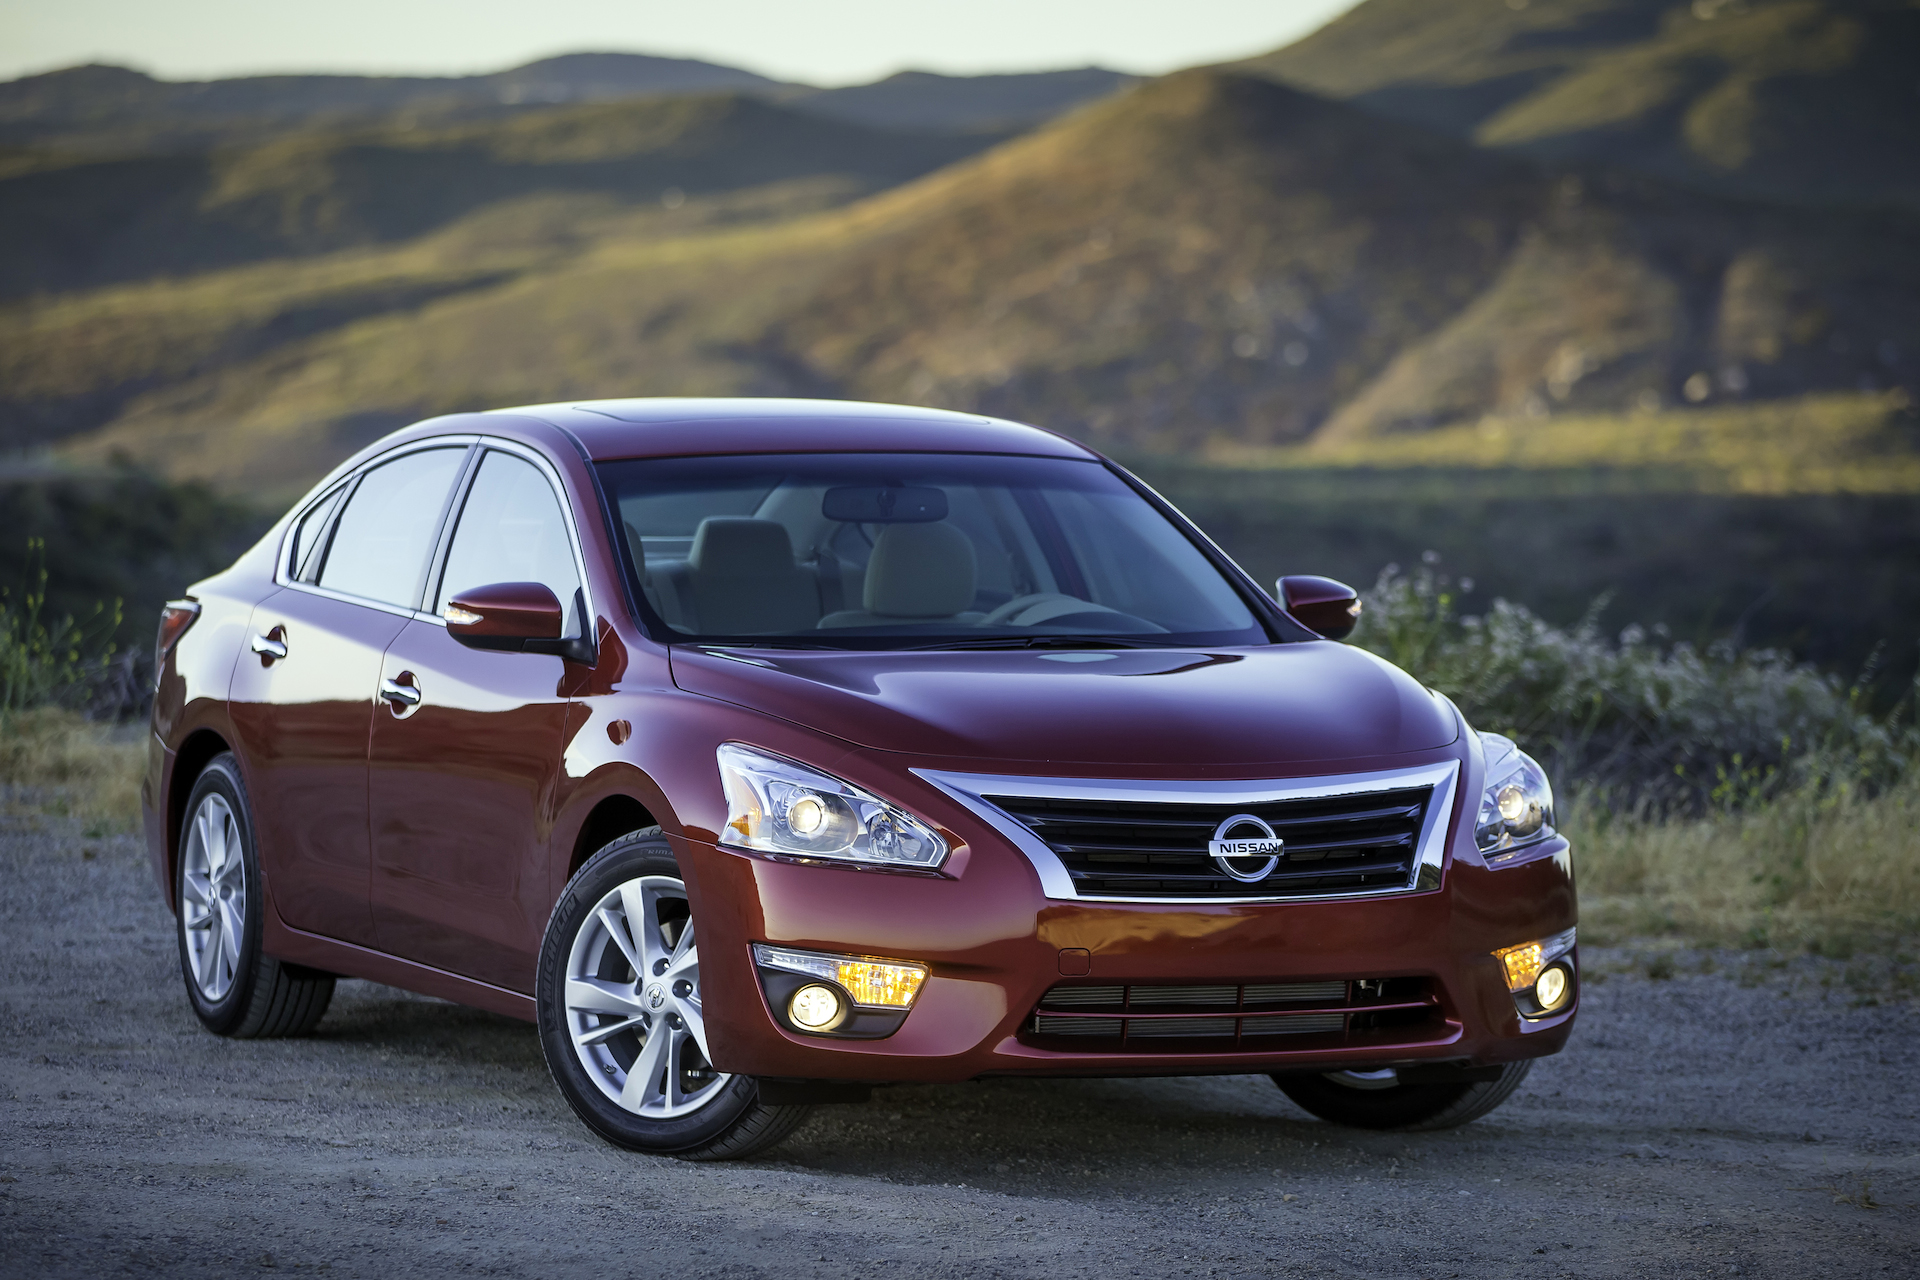 2015 Nissan Altima Review, Ratings, Specs, Prices, and ...